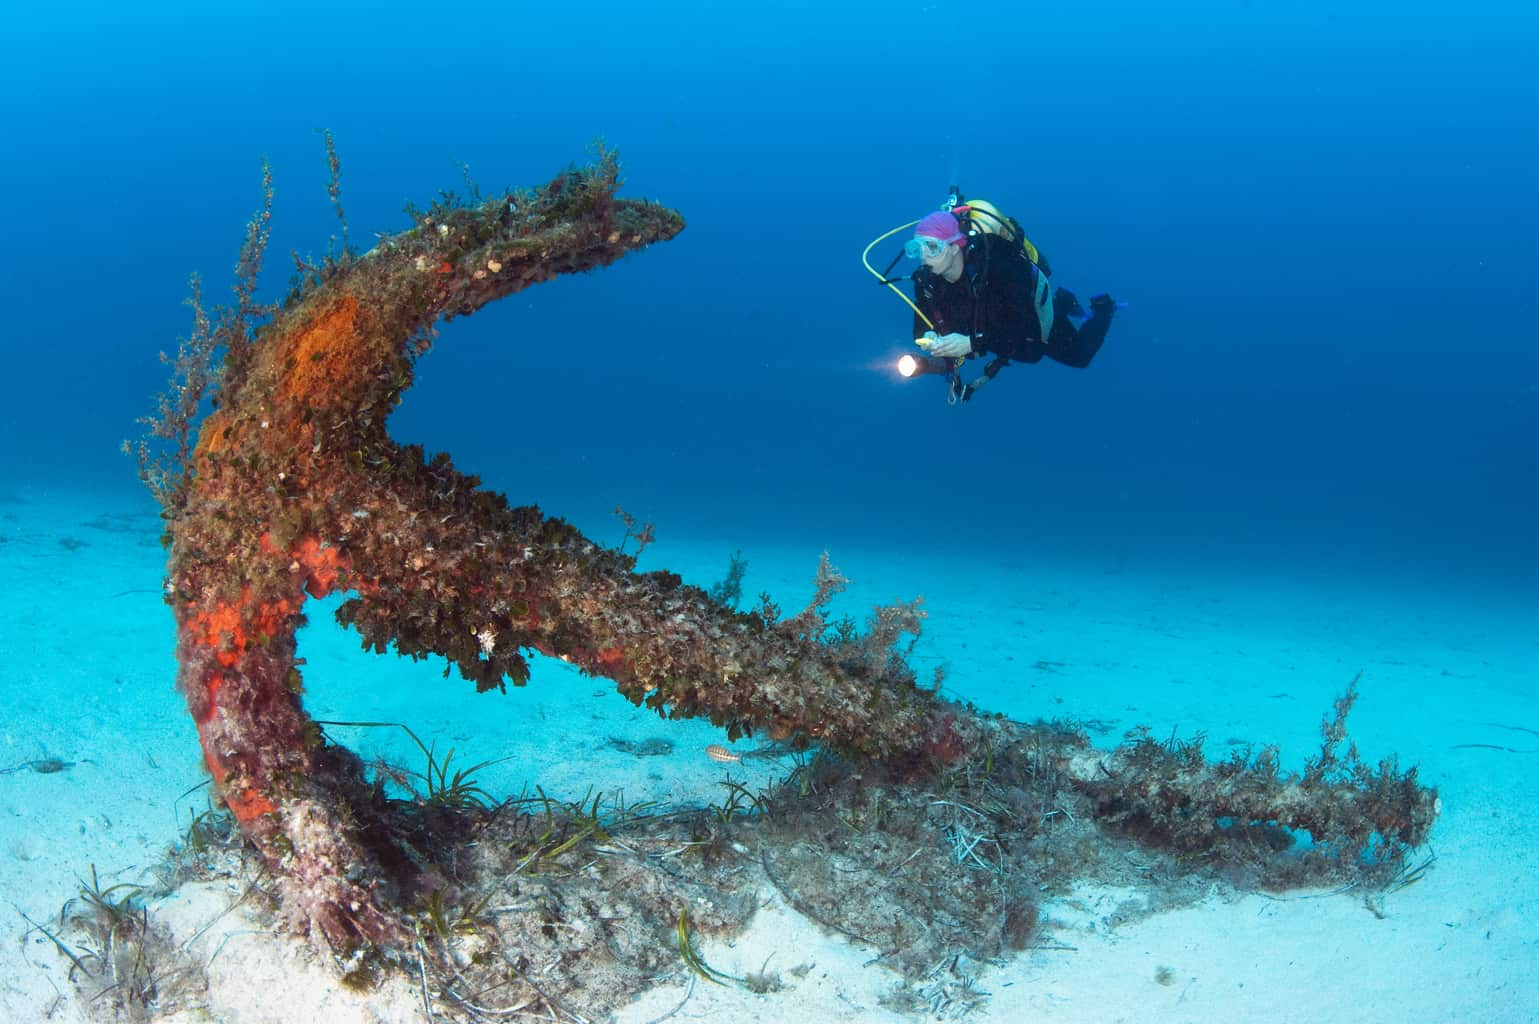 Malta and Gozo Diving holidays Diver and anchor